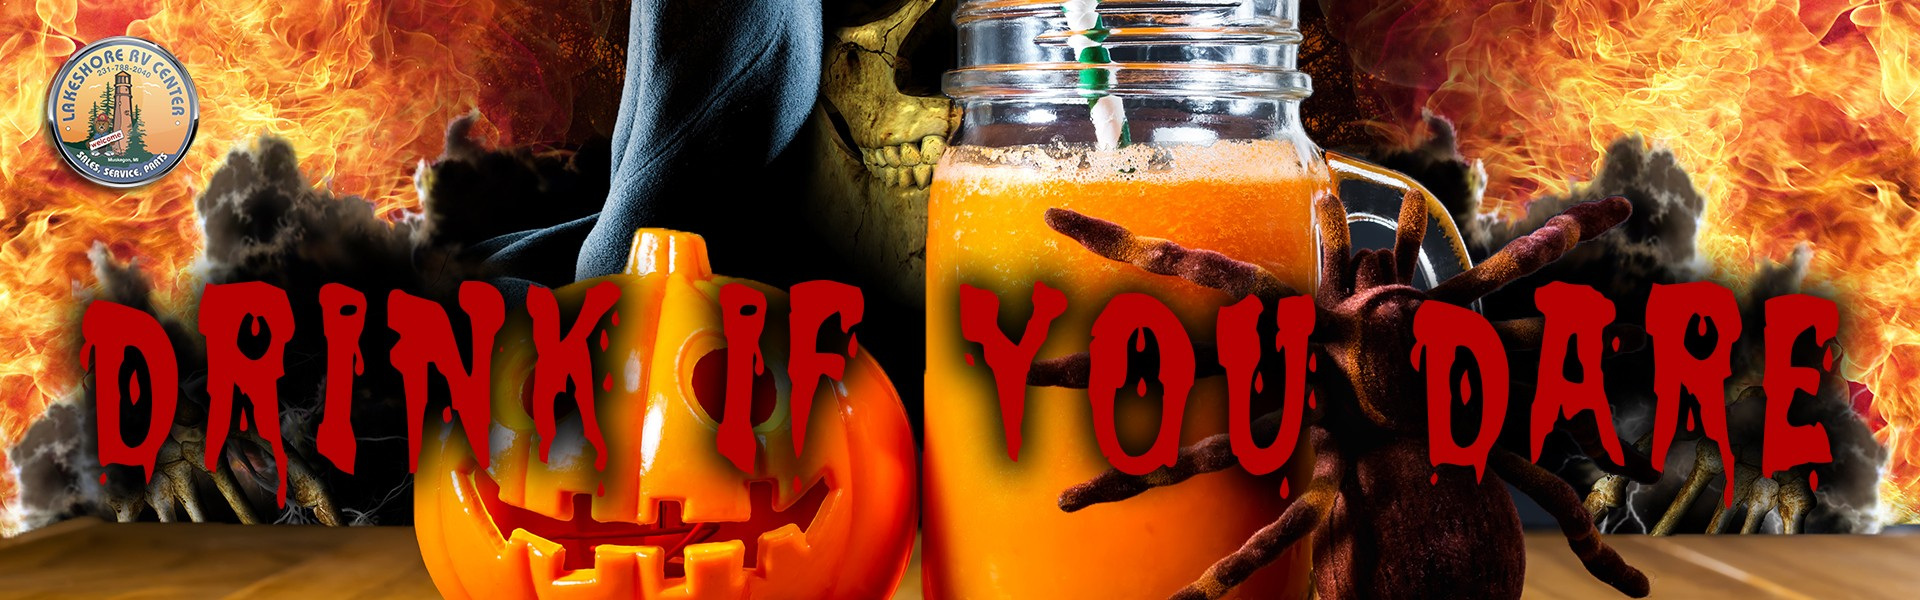 Drink if you dare. Skeleton reaching for Halloween drink.